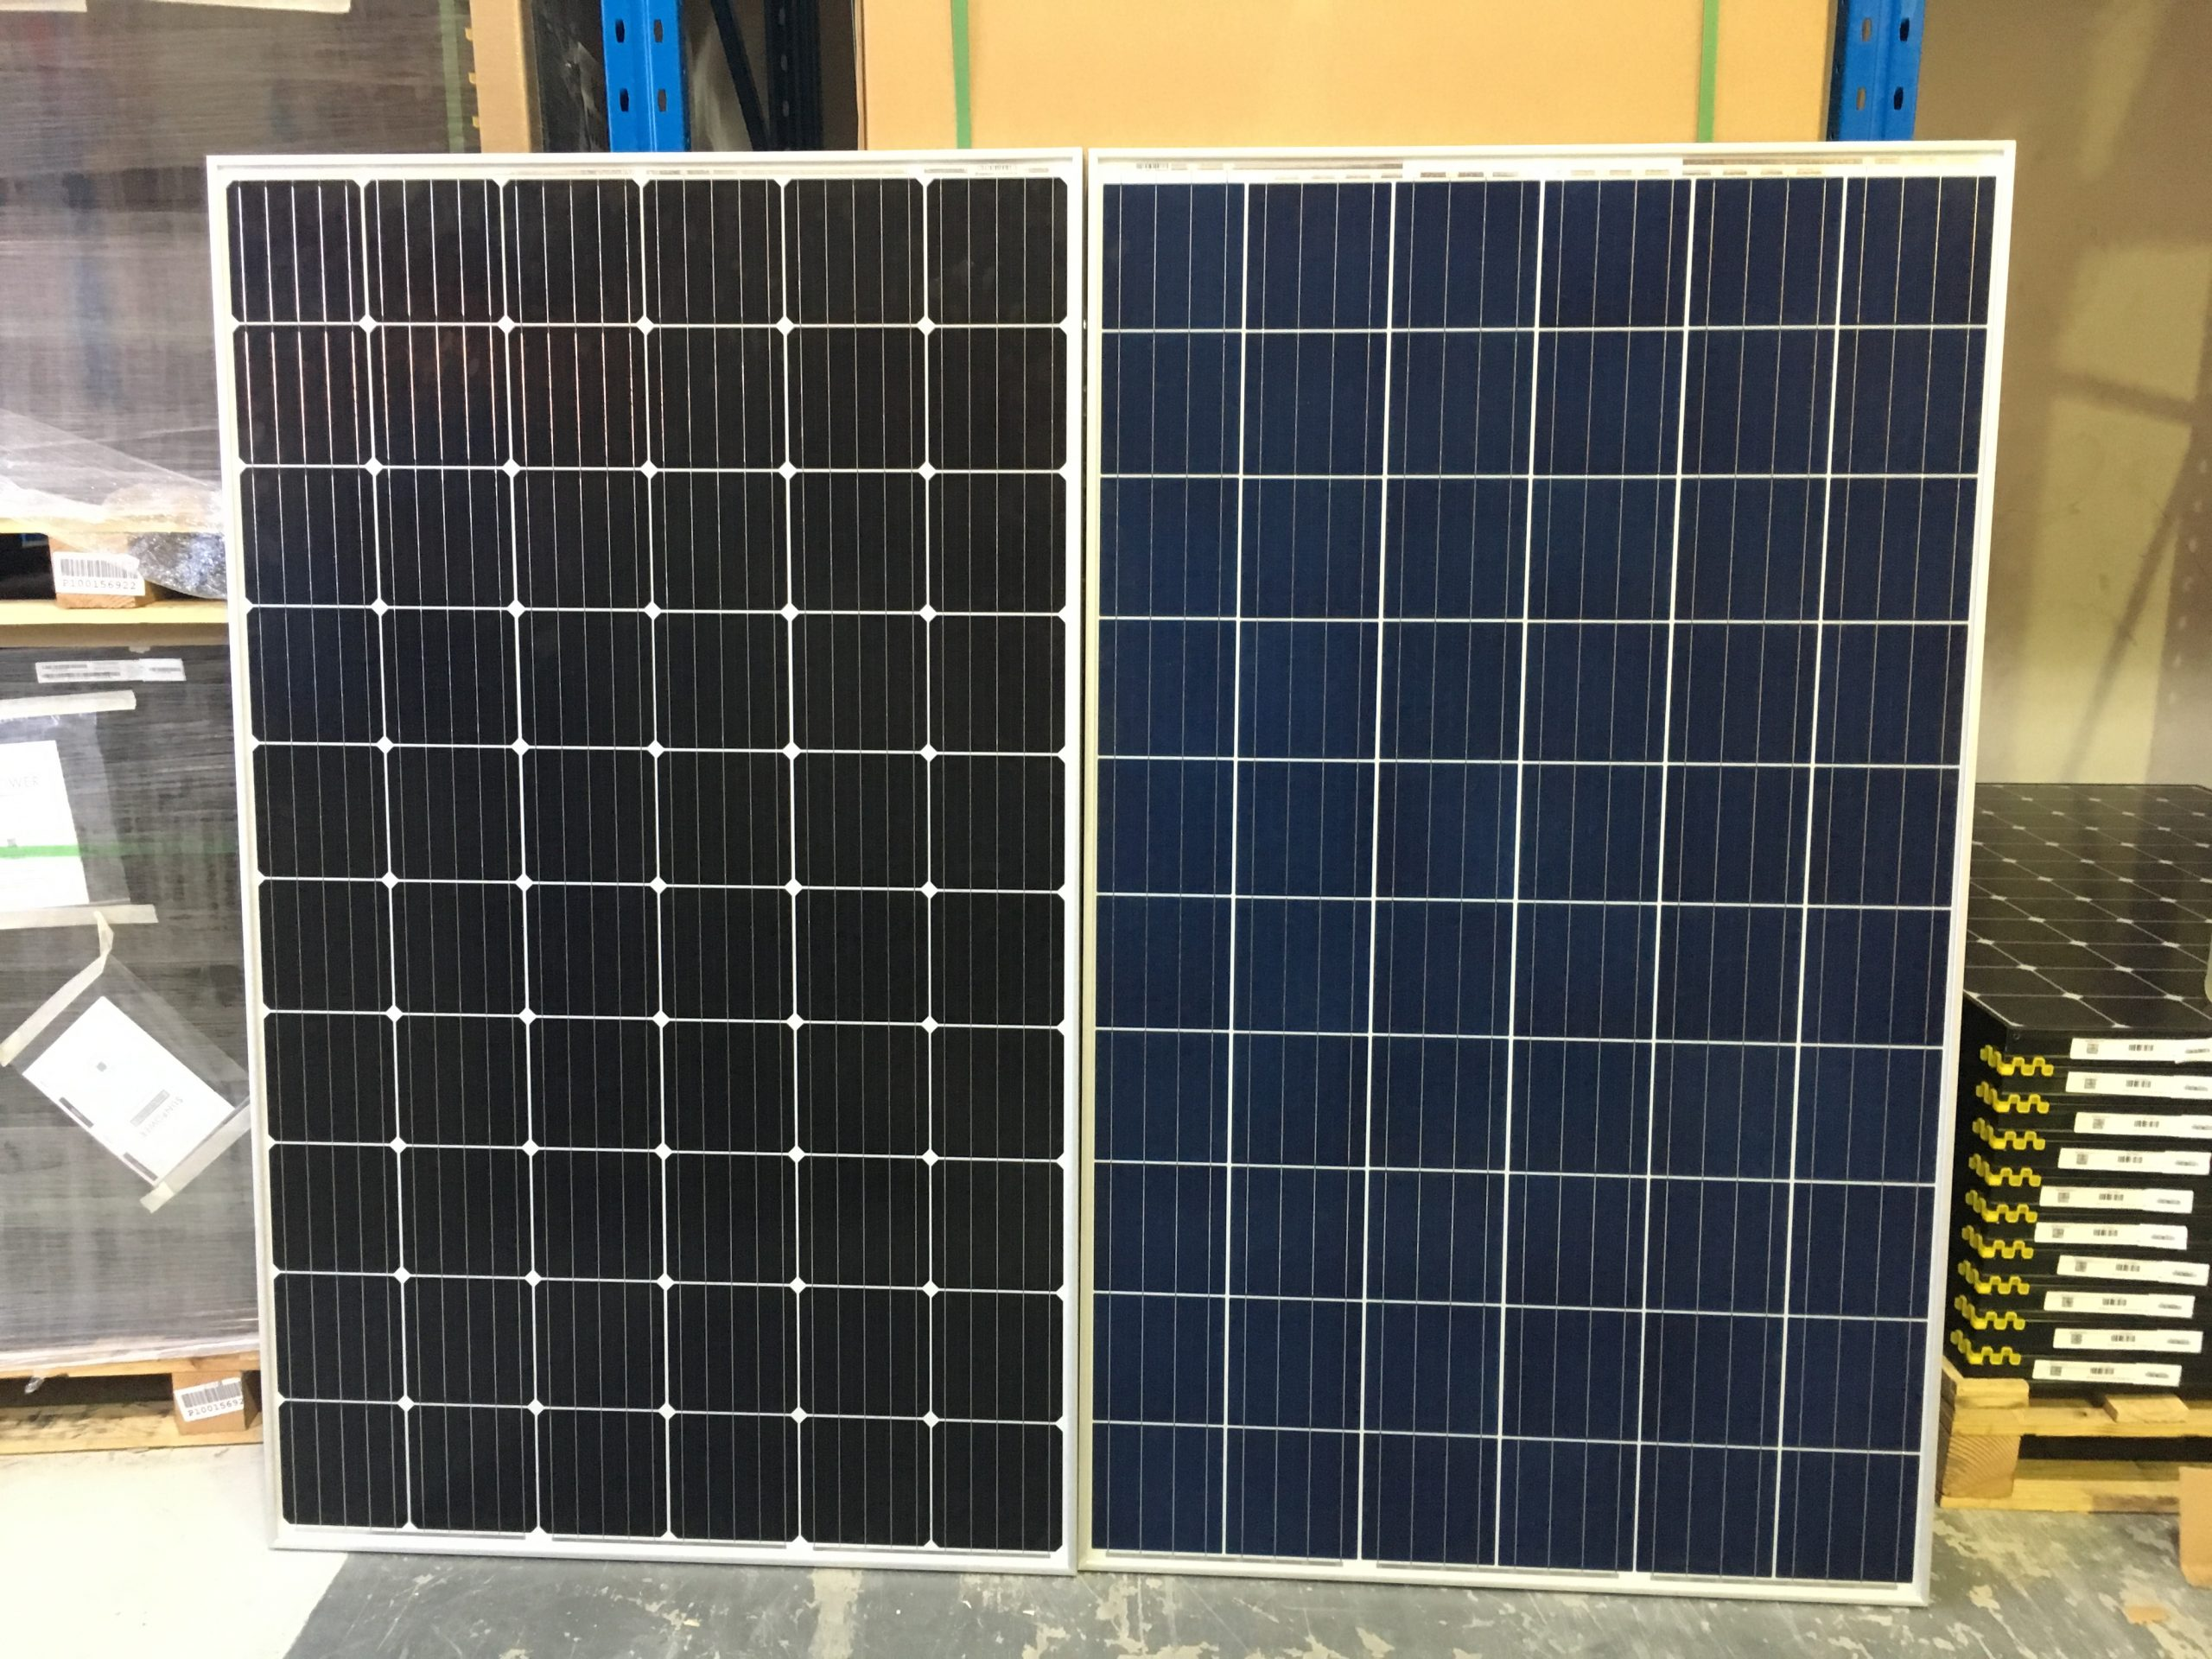 Are Monocrystalline or polycrystalline solar panels better